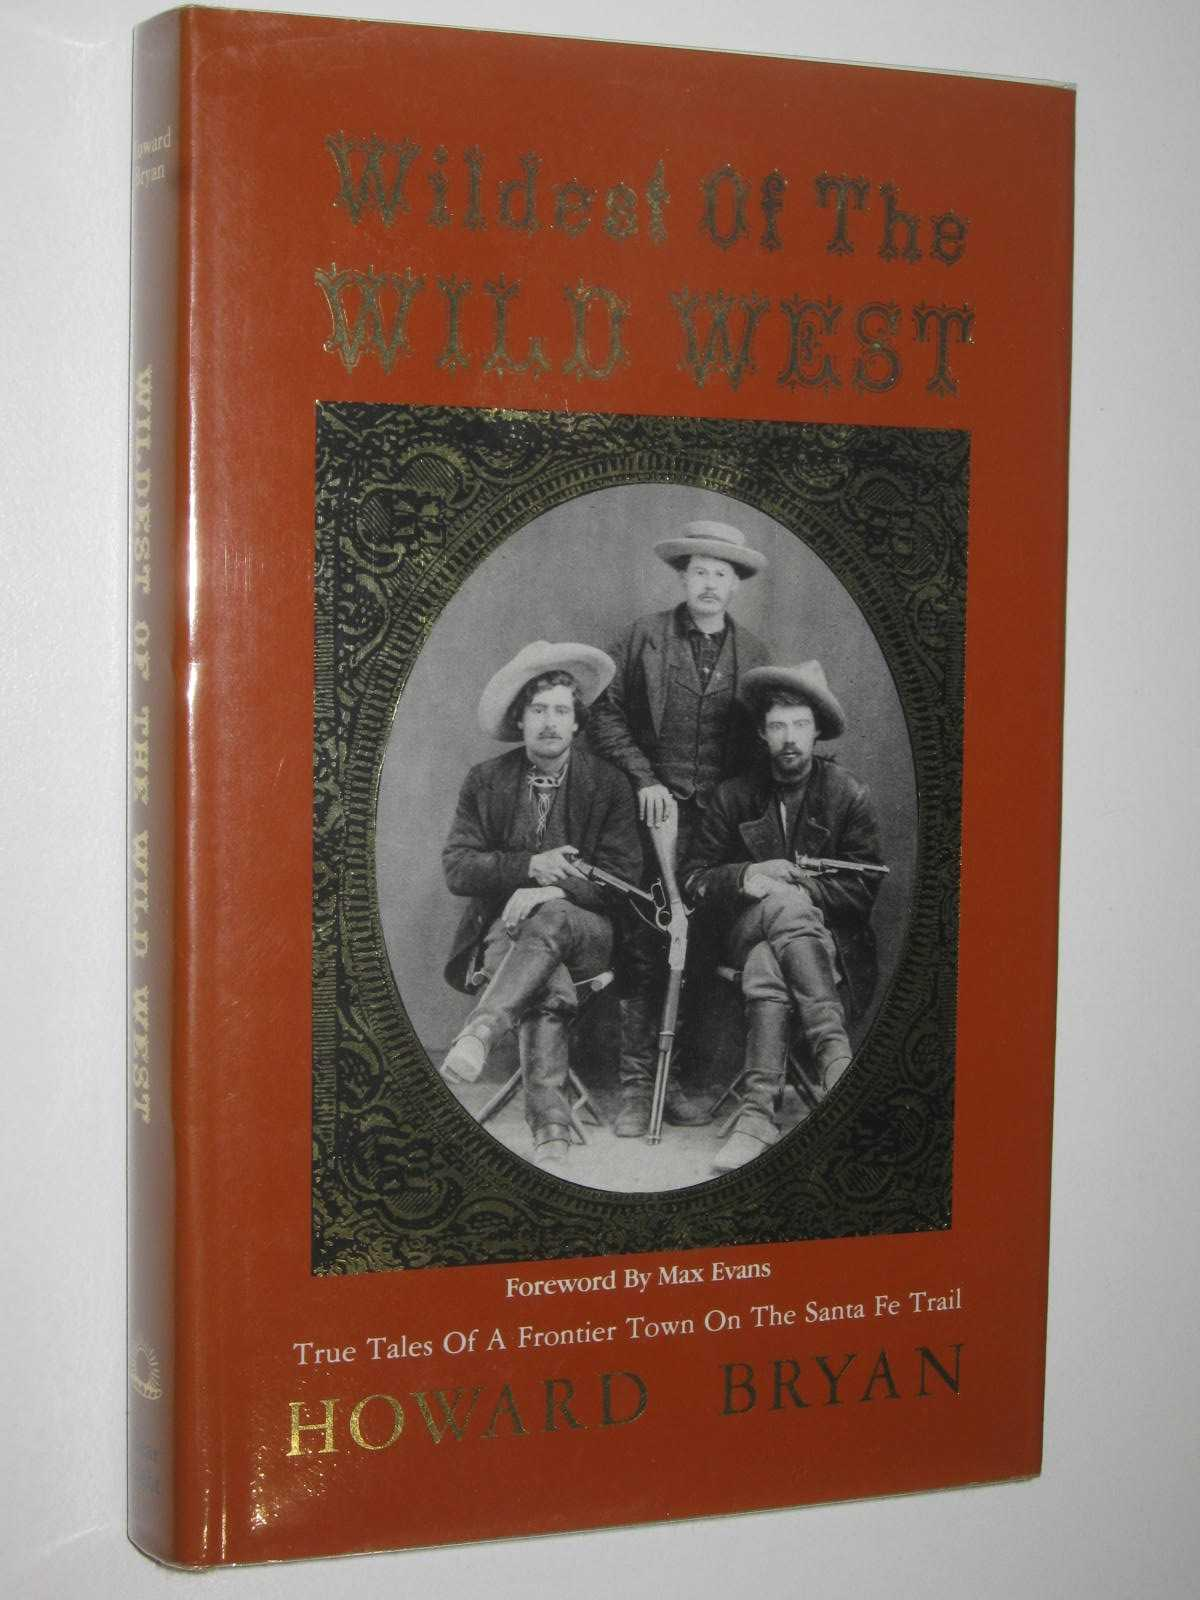 Image for Wildest of the Wild West : True Tales of a Frontier Town on the Santa Fe Trail